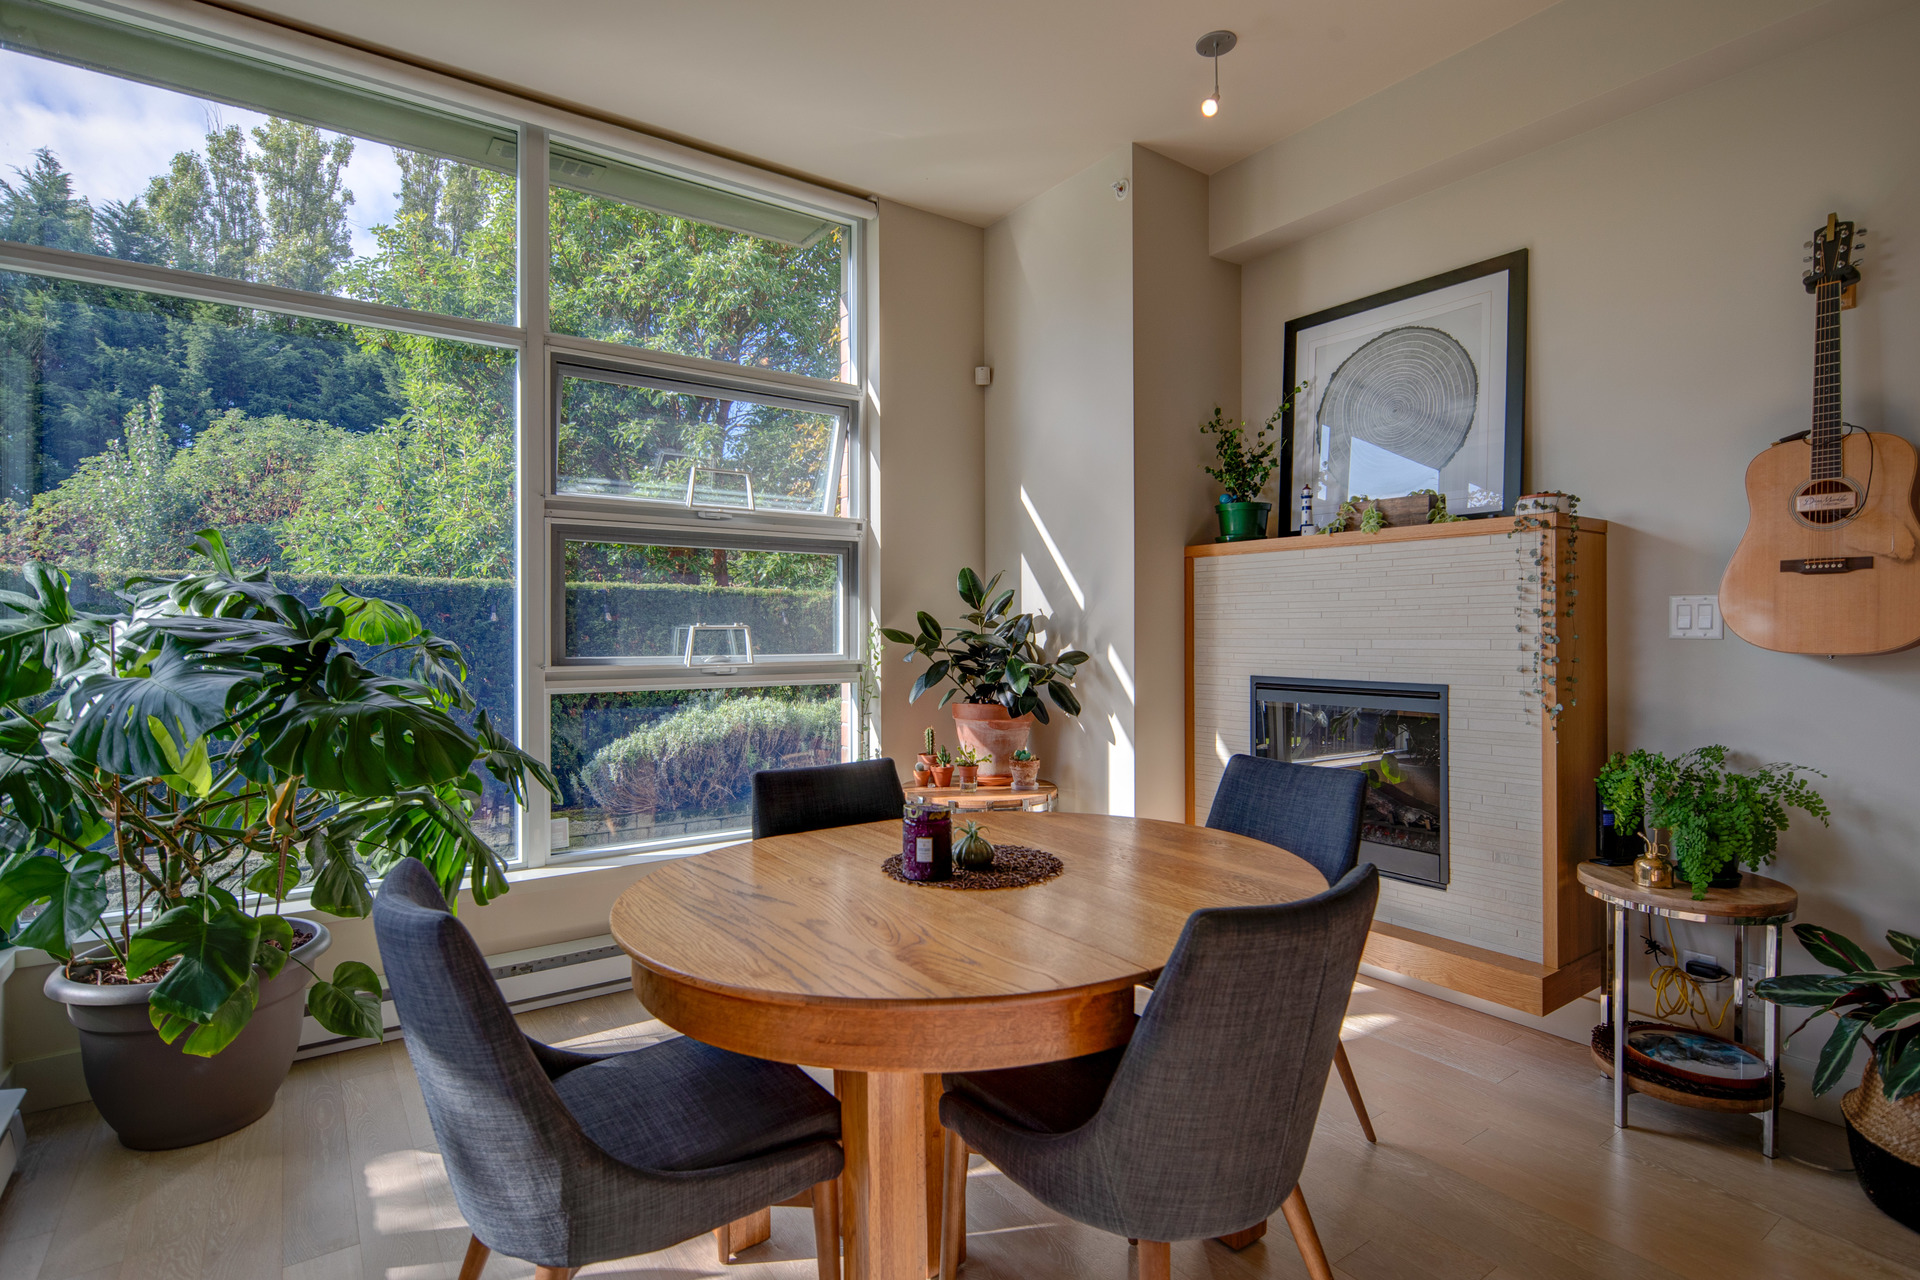 Dining Are With Gas Fireplace at 115 - 365 Waterfront Crescent, Rock Bay, Victoria